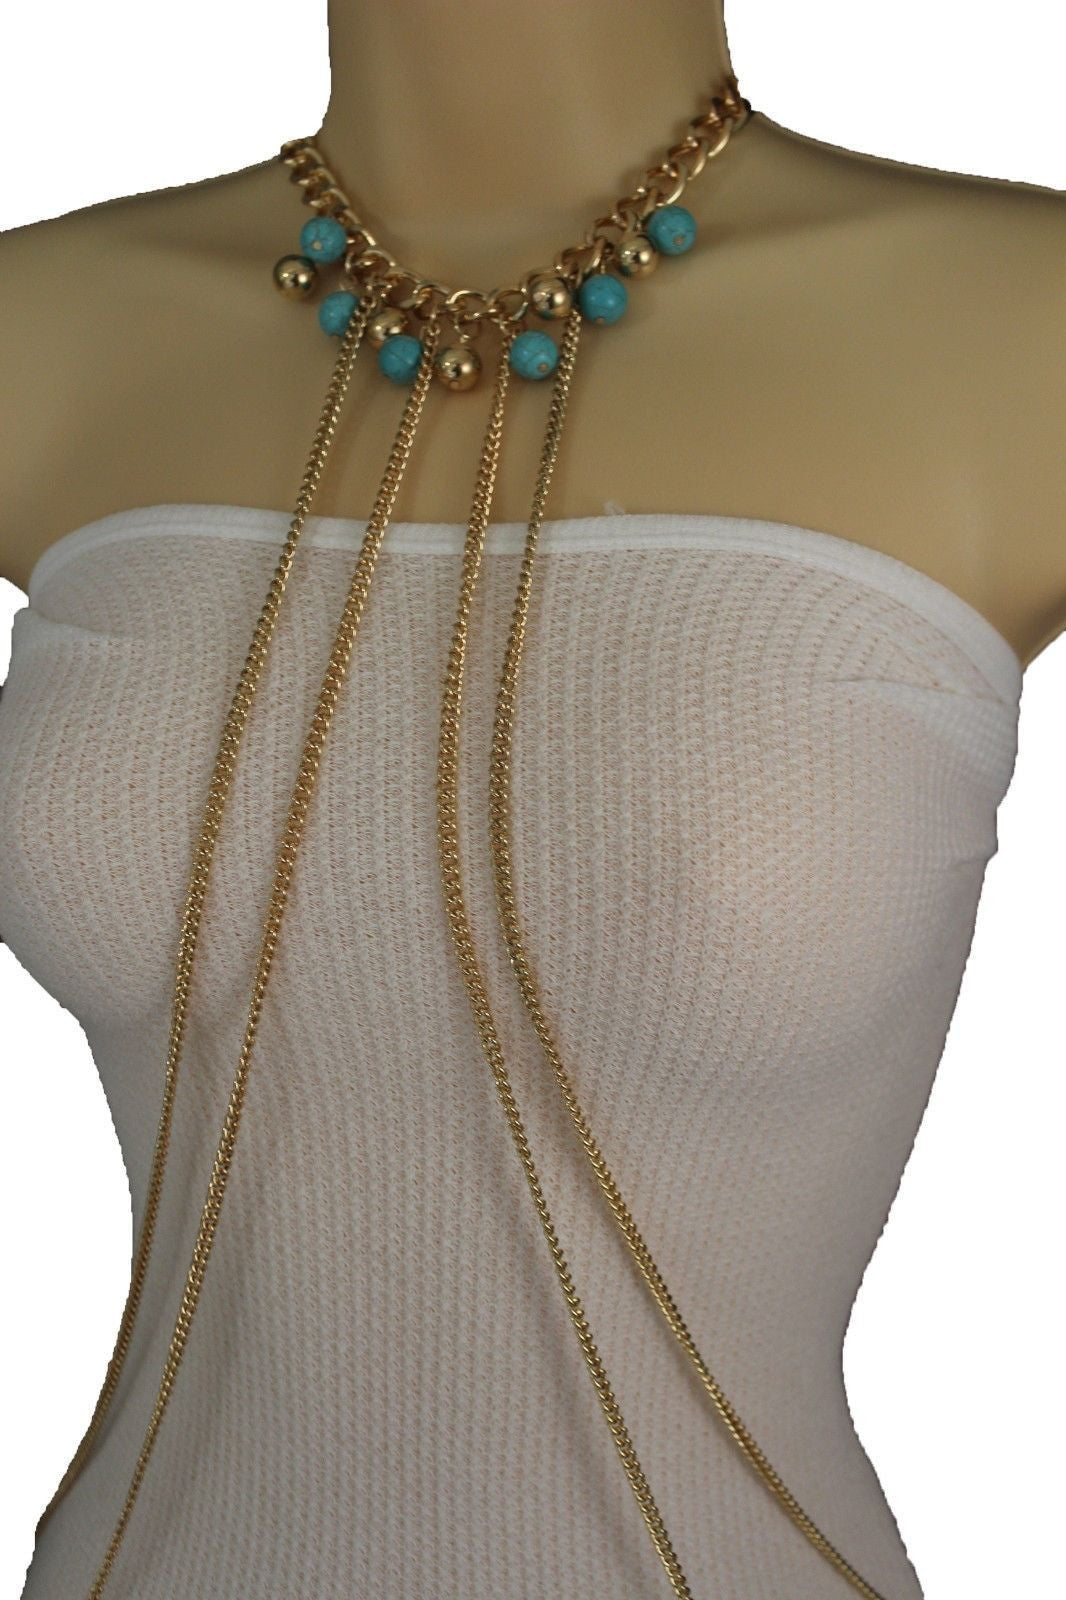 5d7f649f643c Gold Metal Body Chains Necklace Multi Stripes Blue Turquoise Gold Balls New  Women Jewelry Accessories